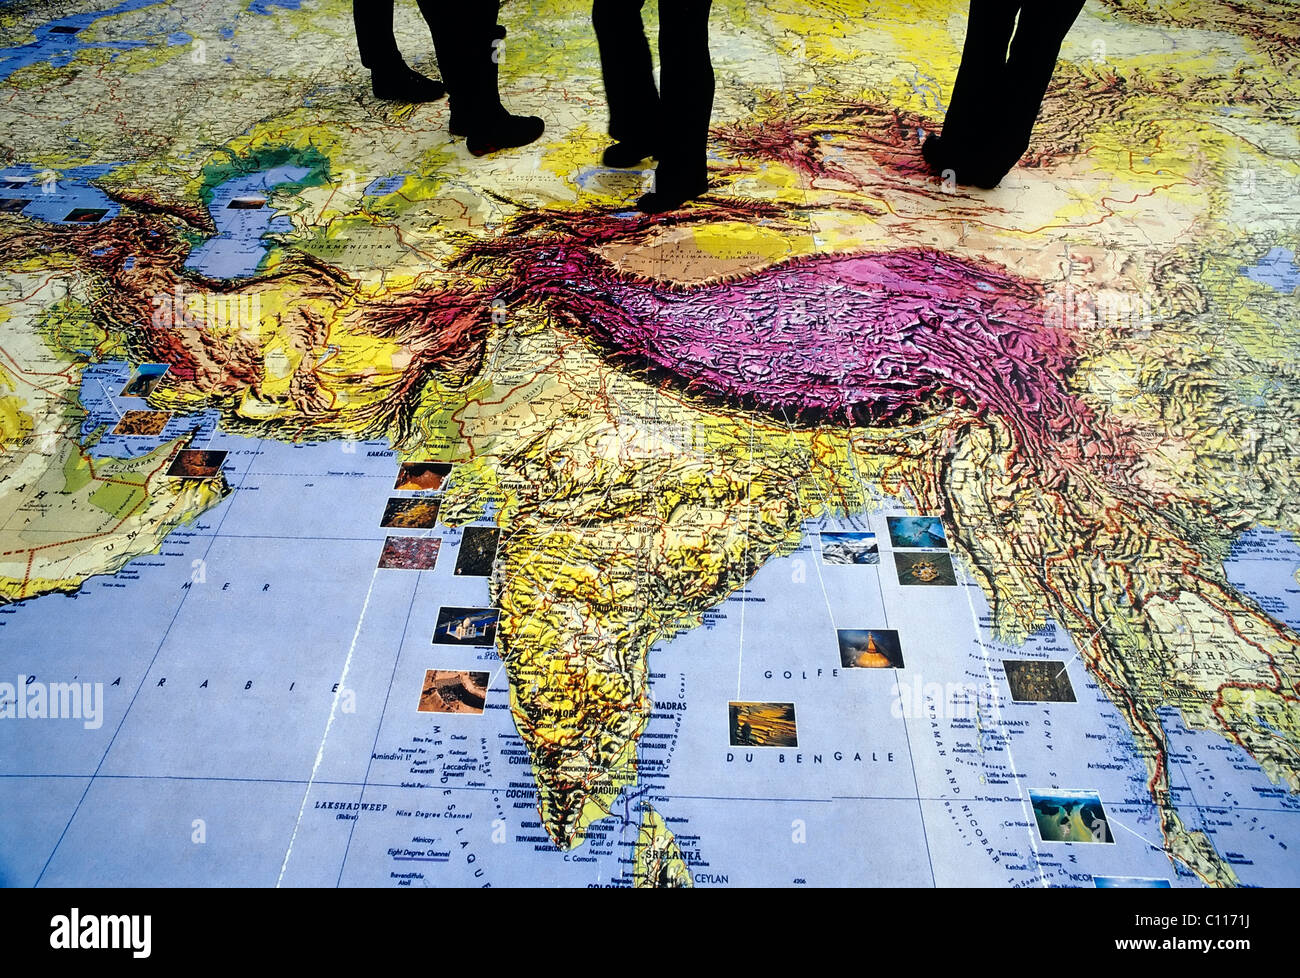 Passers by walking on a world map on the floor detail of asia stock passers by walking on a world map on the floor detail of asia india amsterdam the netherlands europe gumiabroncs Image collections